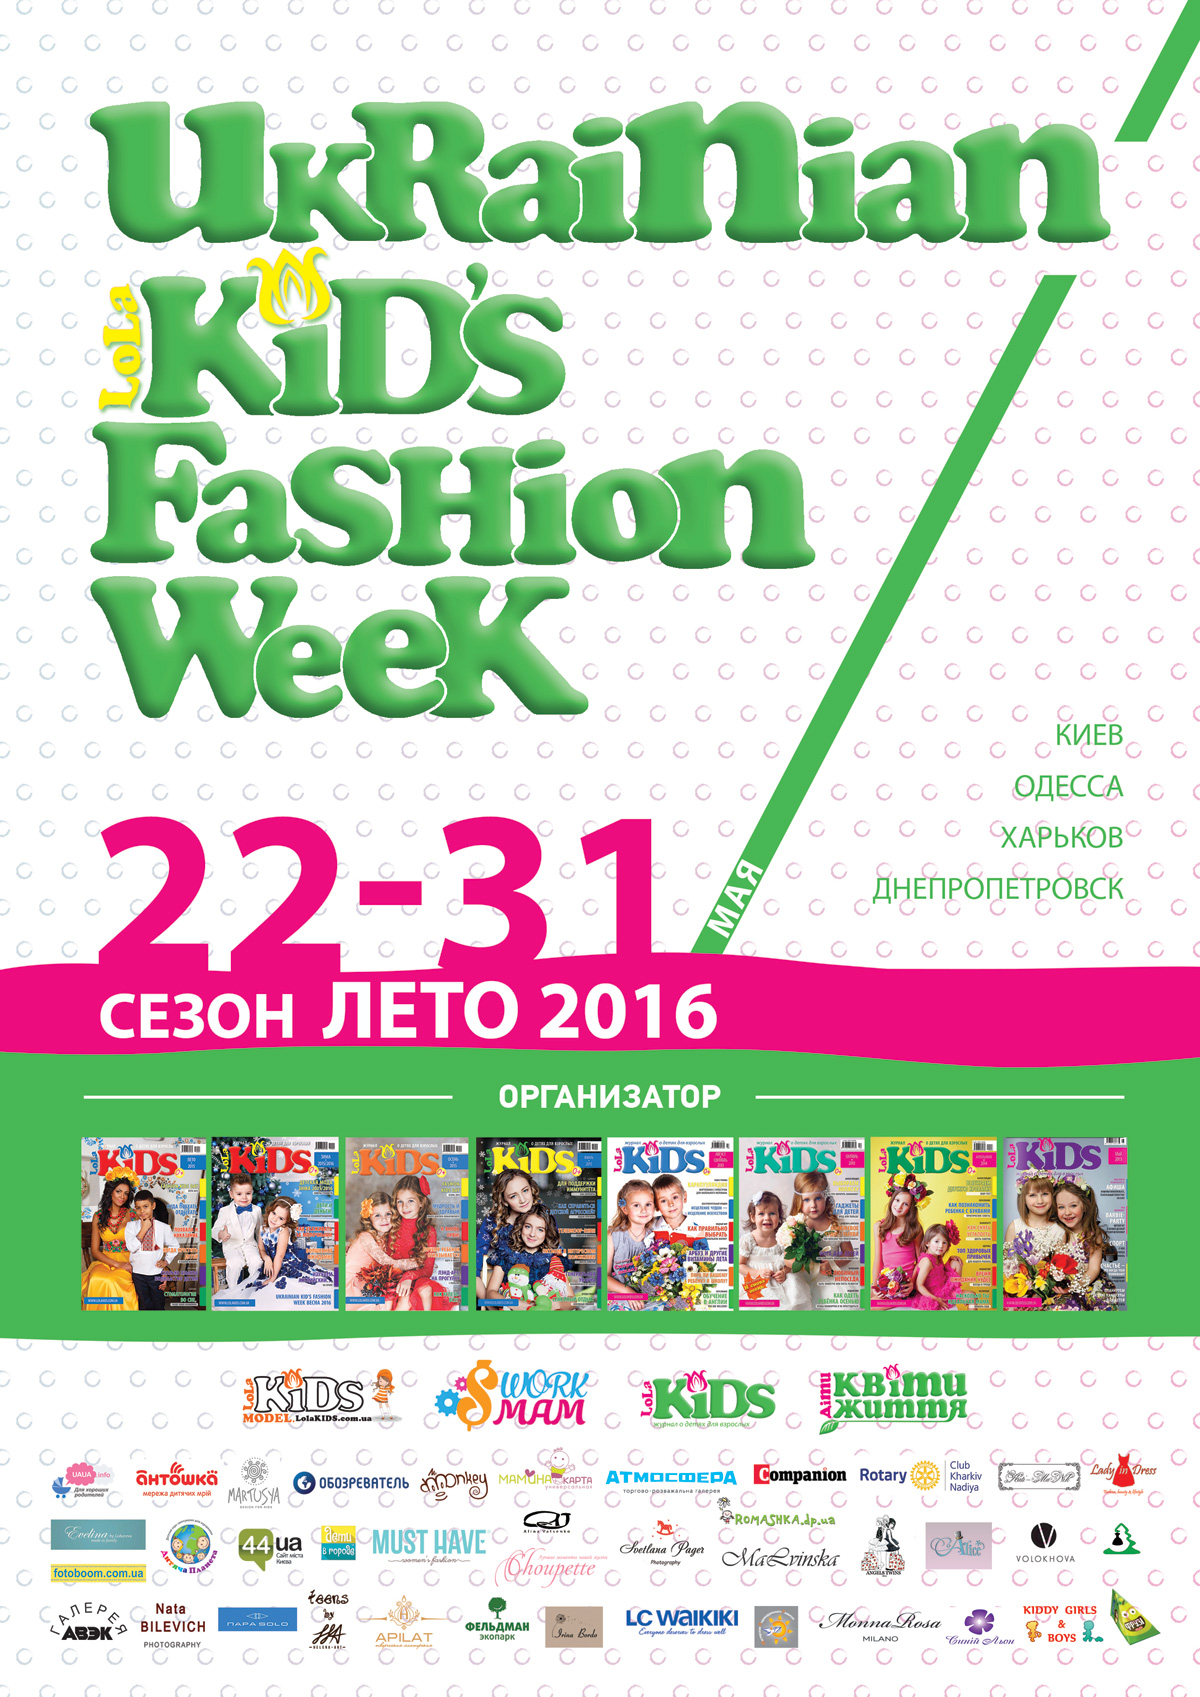 Ukrainian Kid's Fashion Week сезон лето